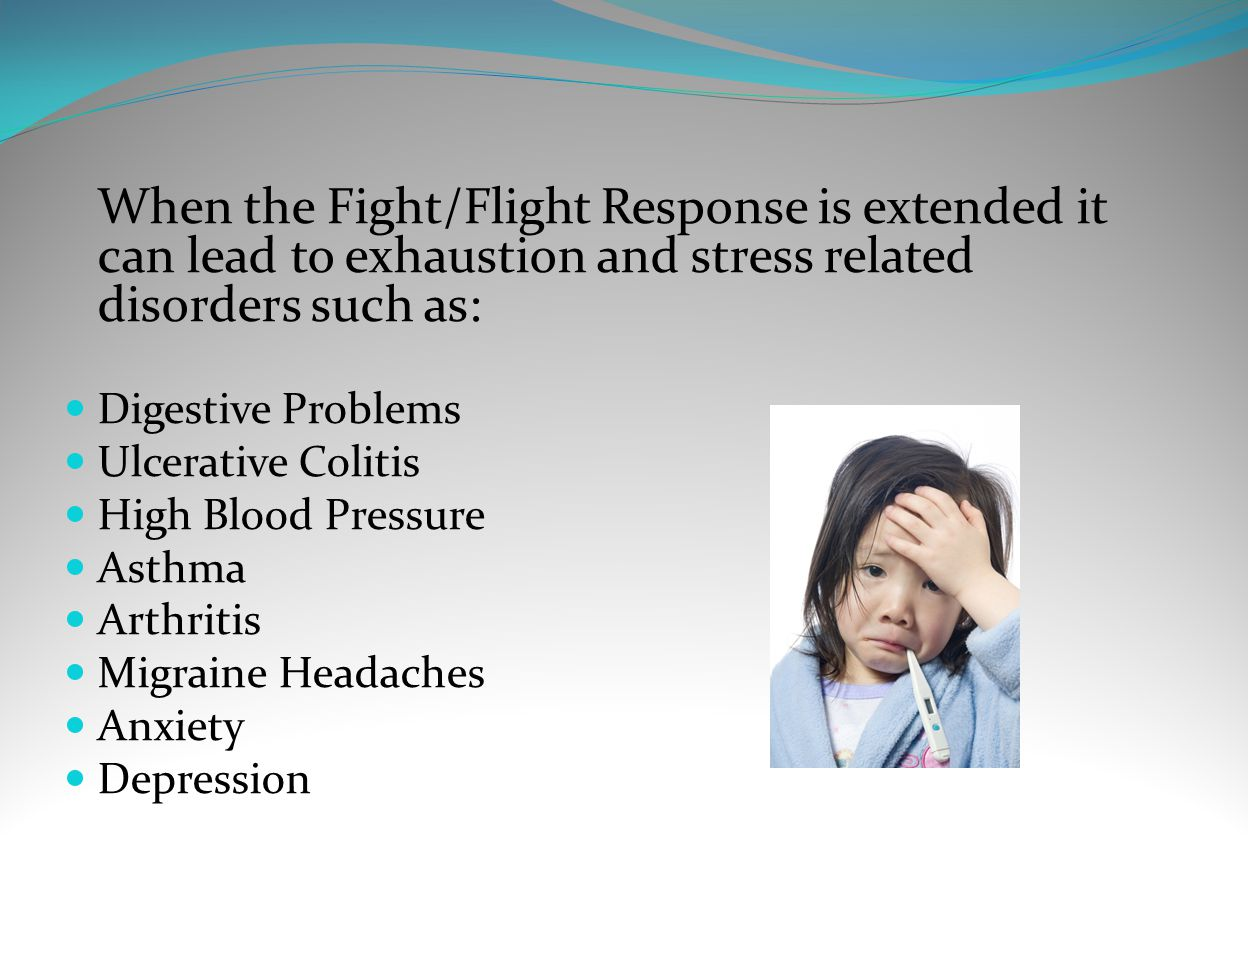 When the Fight/Flight Response is extended it can lead to exhaustion and stress related disorders such as: Digestive Problems Ulcerative Colitis High